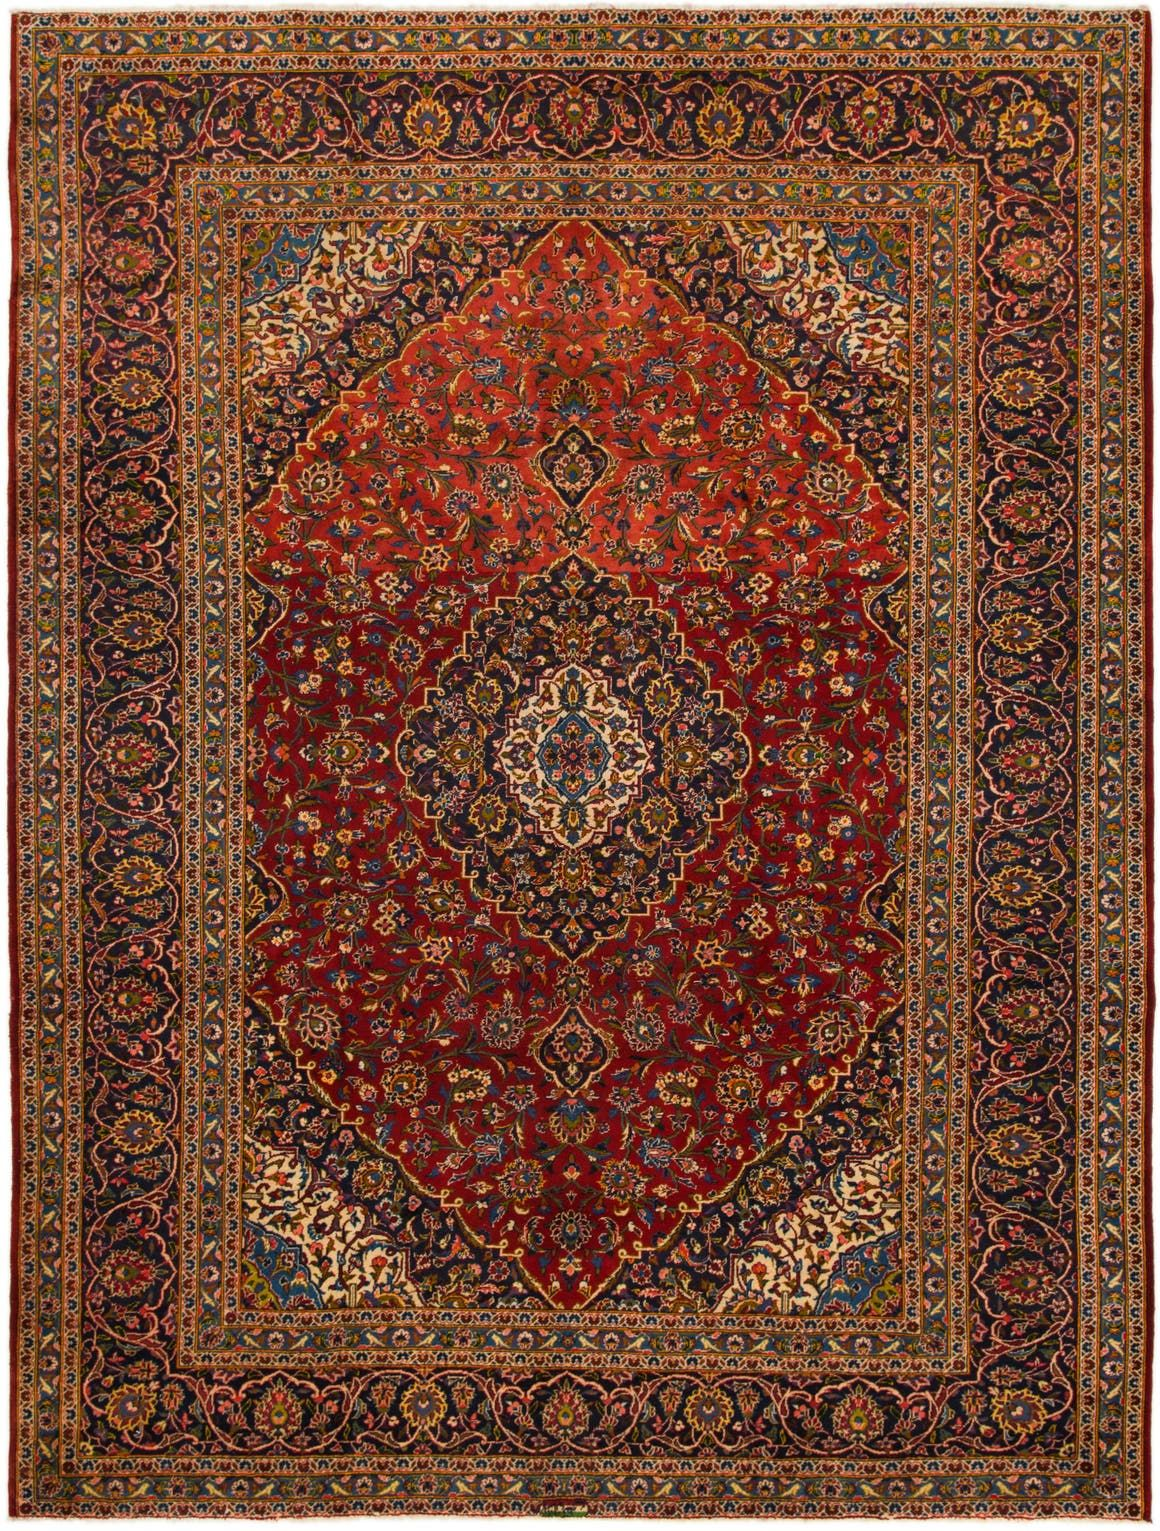 Kashan Red Antique 10x13 Large Area Rug In 2020 Rugs Persian Rug Large Area Rugs